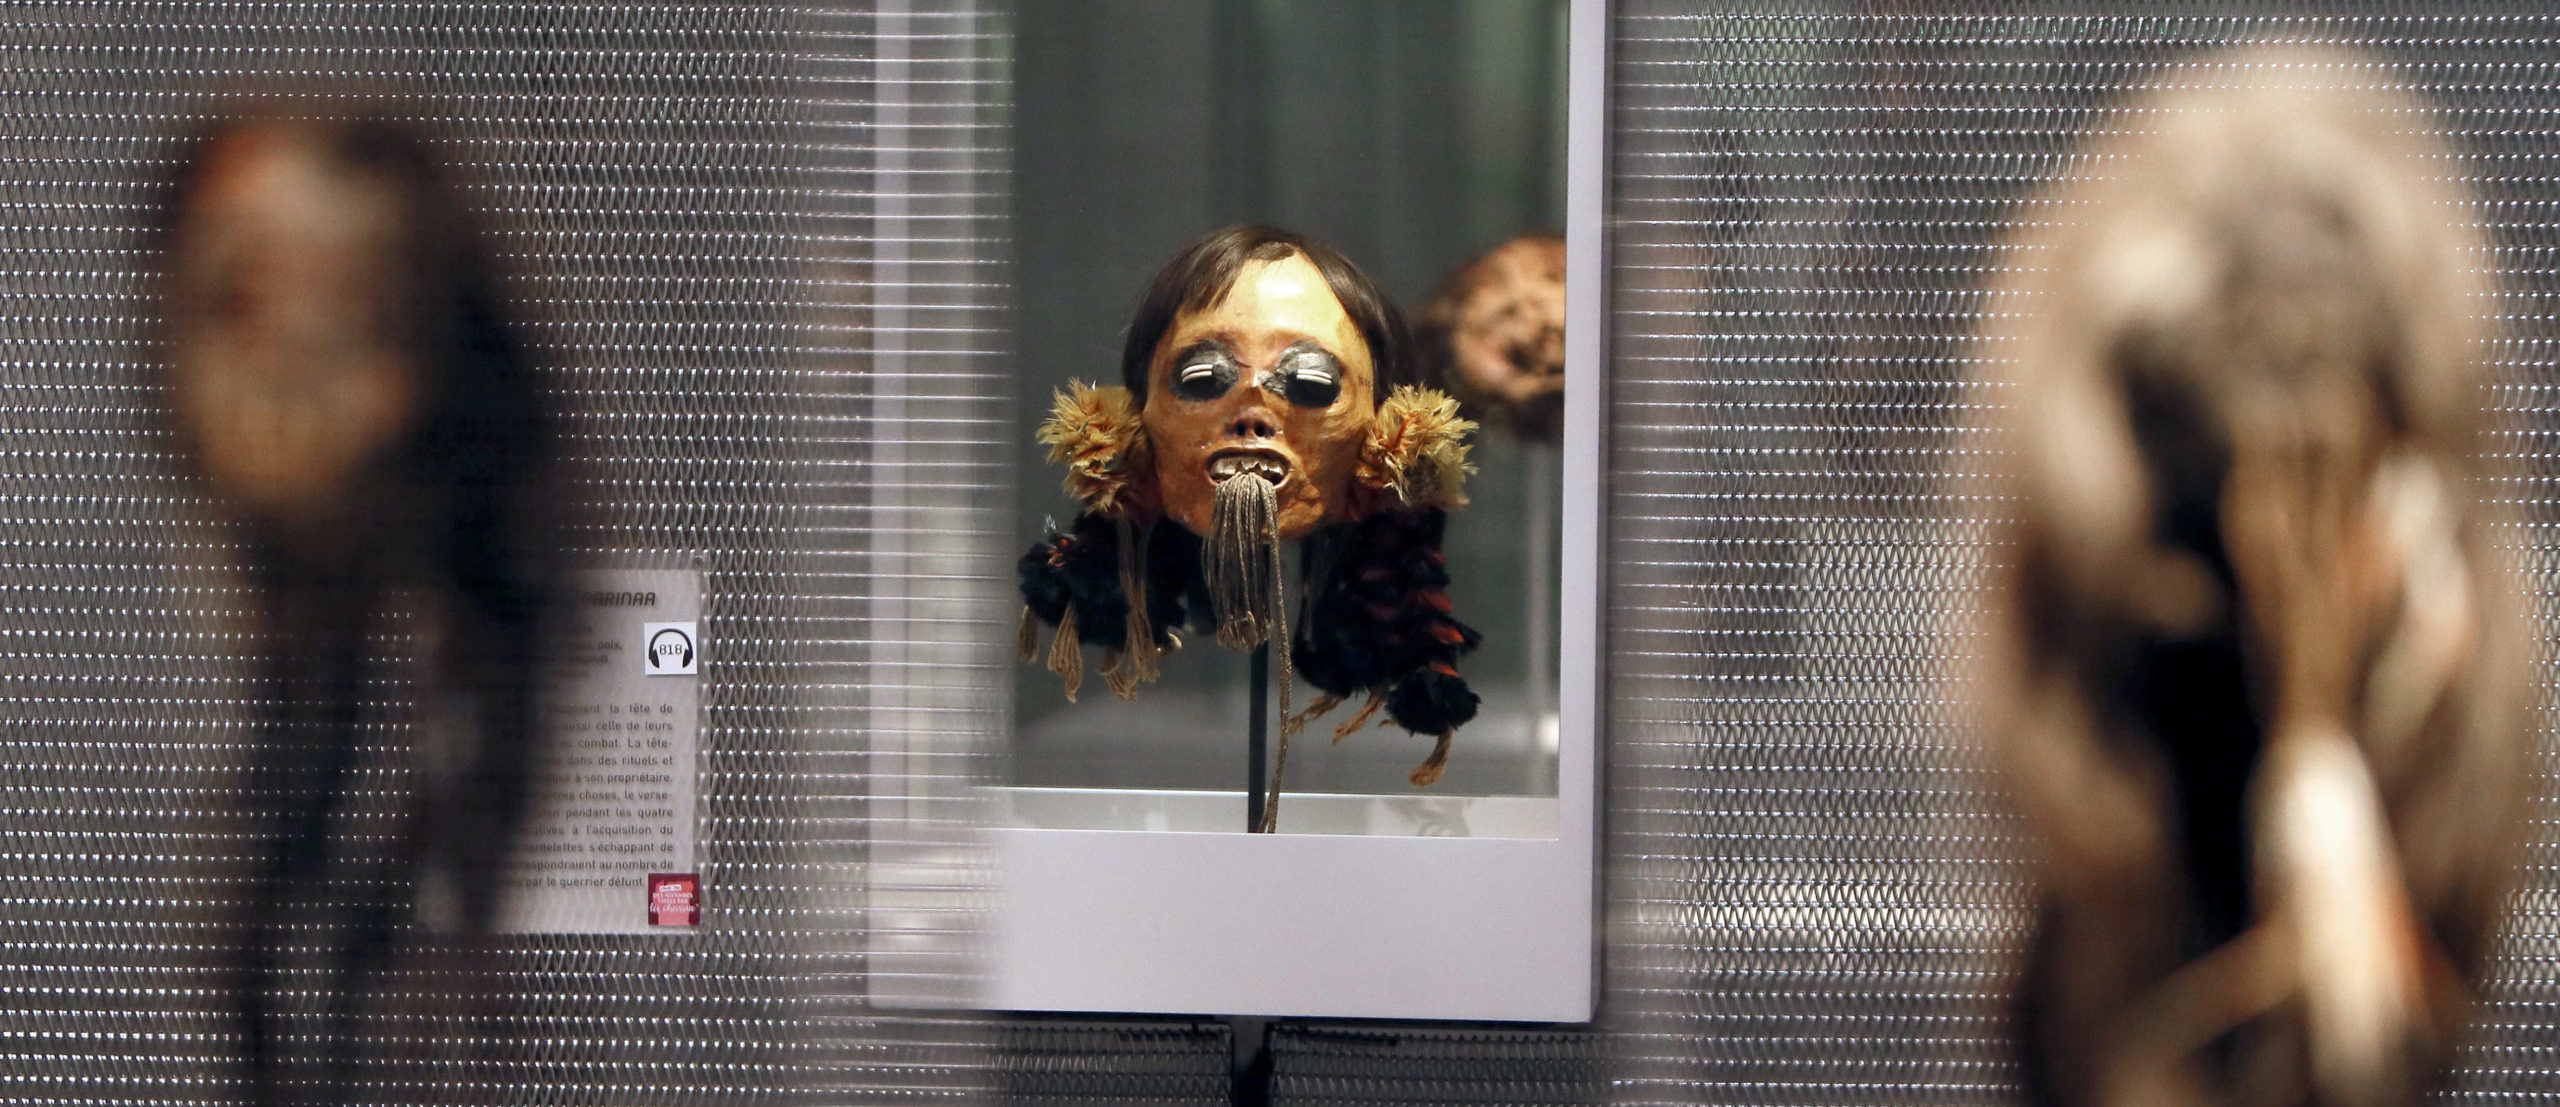 Museum Removes Famous Shrunken Heads, Human Remains To 'Decolonize' Its Collections